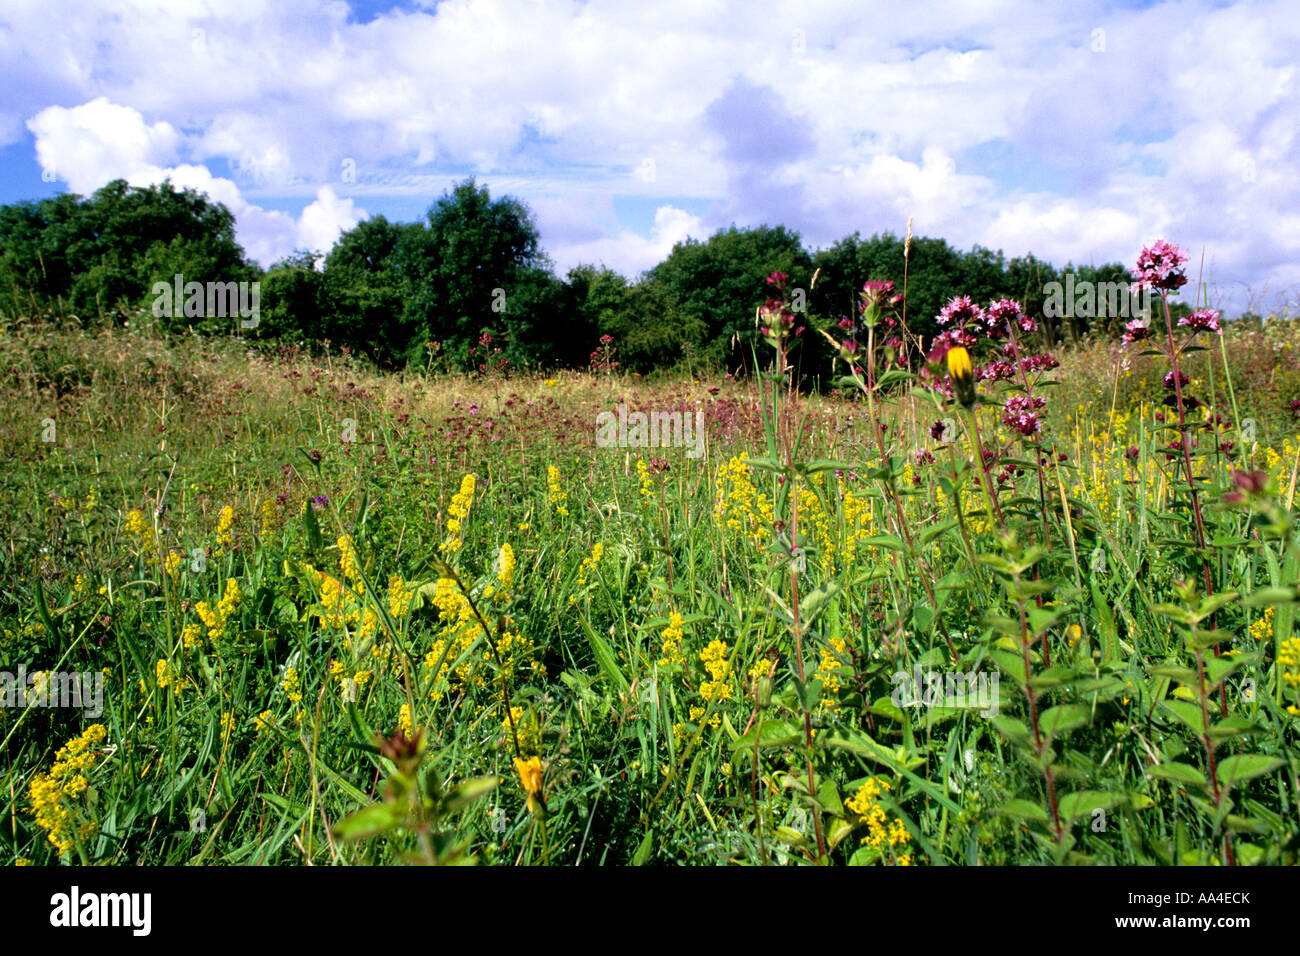 Chalk meadow at Noar Hill reserve, Hampshire - Stock Image